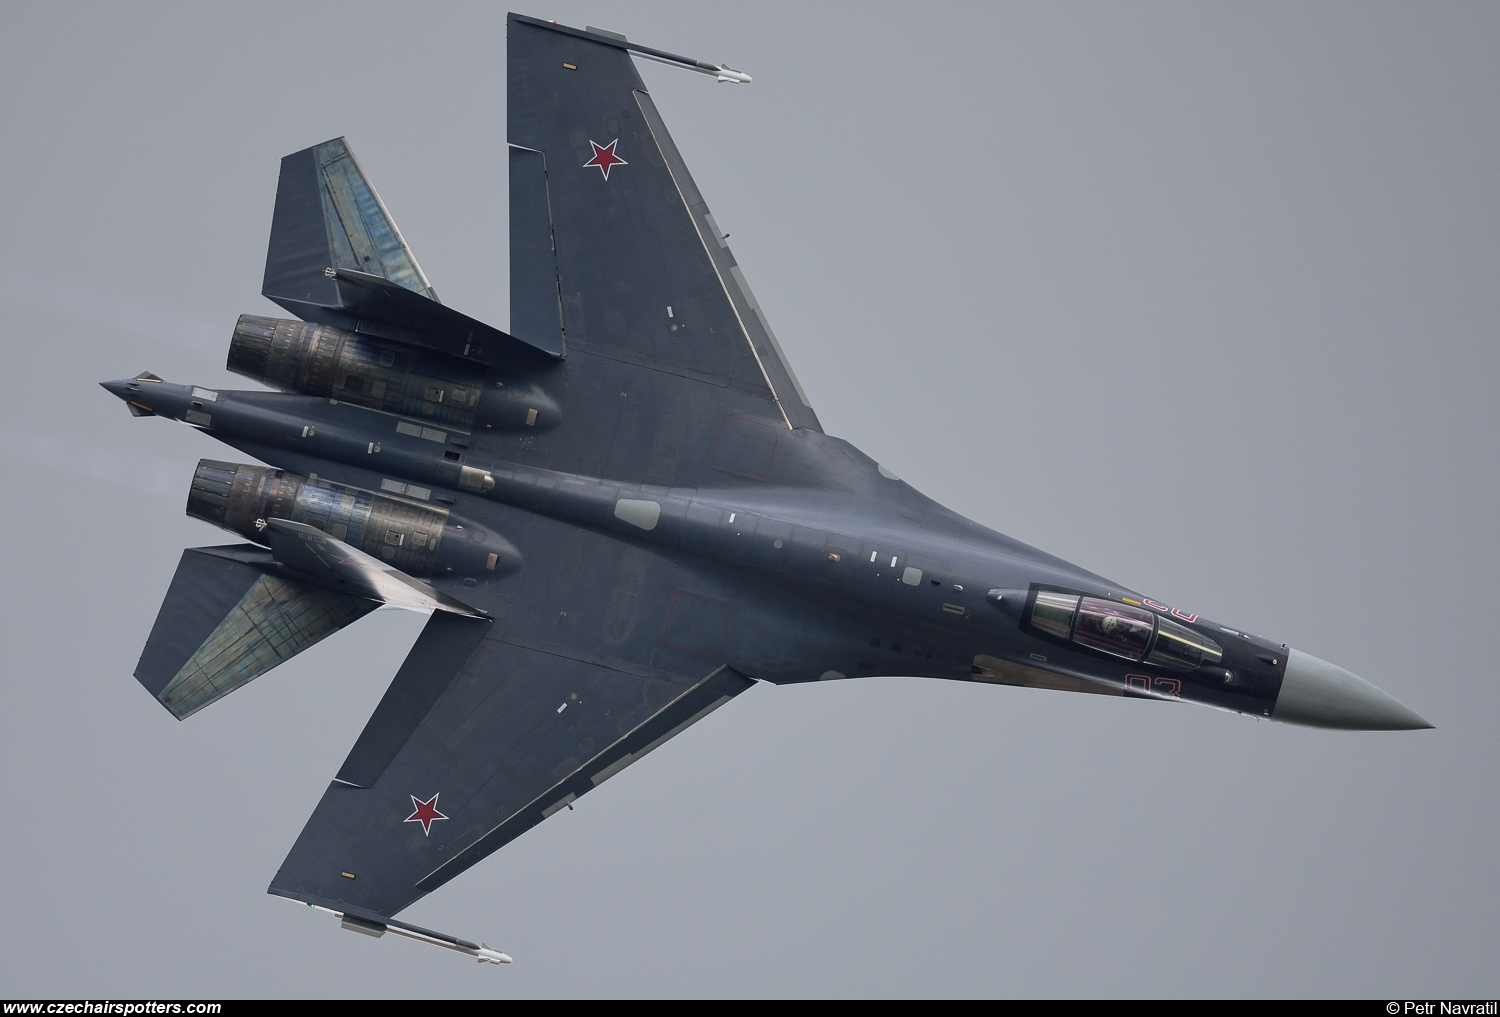 russian air force with Photo on File An 225 front day in addition Story also Bmw Cars Top Gear The Stig Wallpaper 40706 likewise Yakovlev Yak 130 01WHITE russia Russian Air Force 157654 large together with Mg mig29 russia 001.